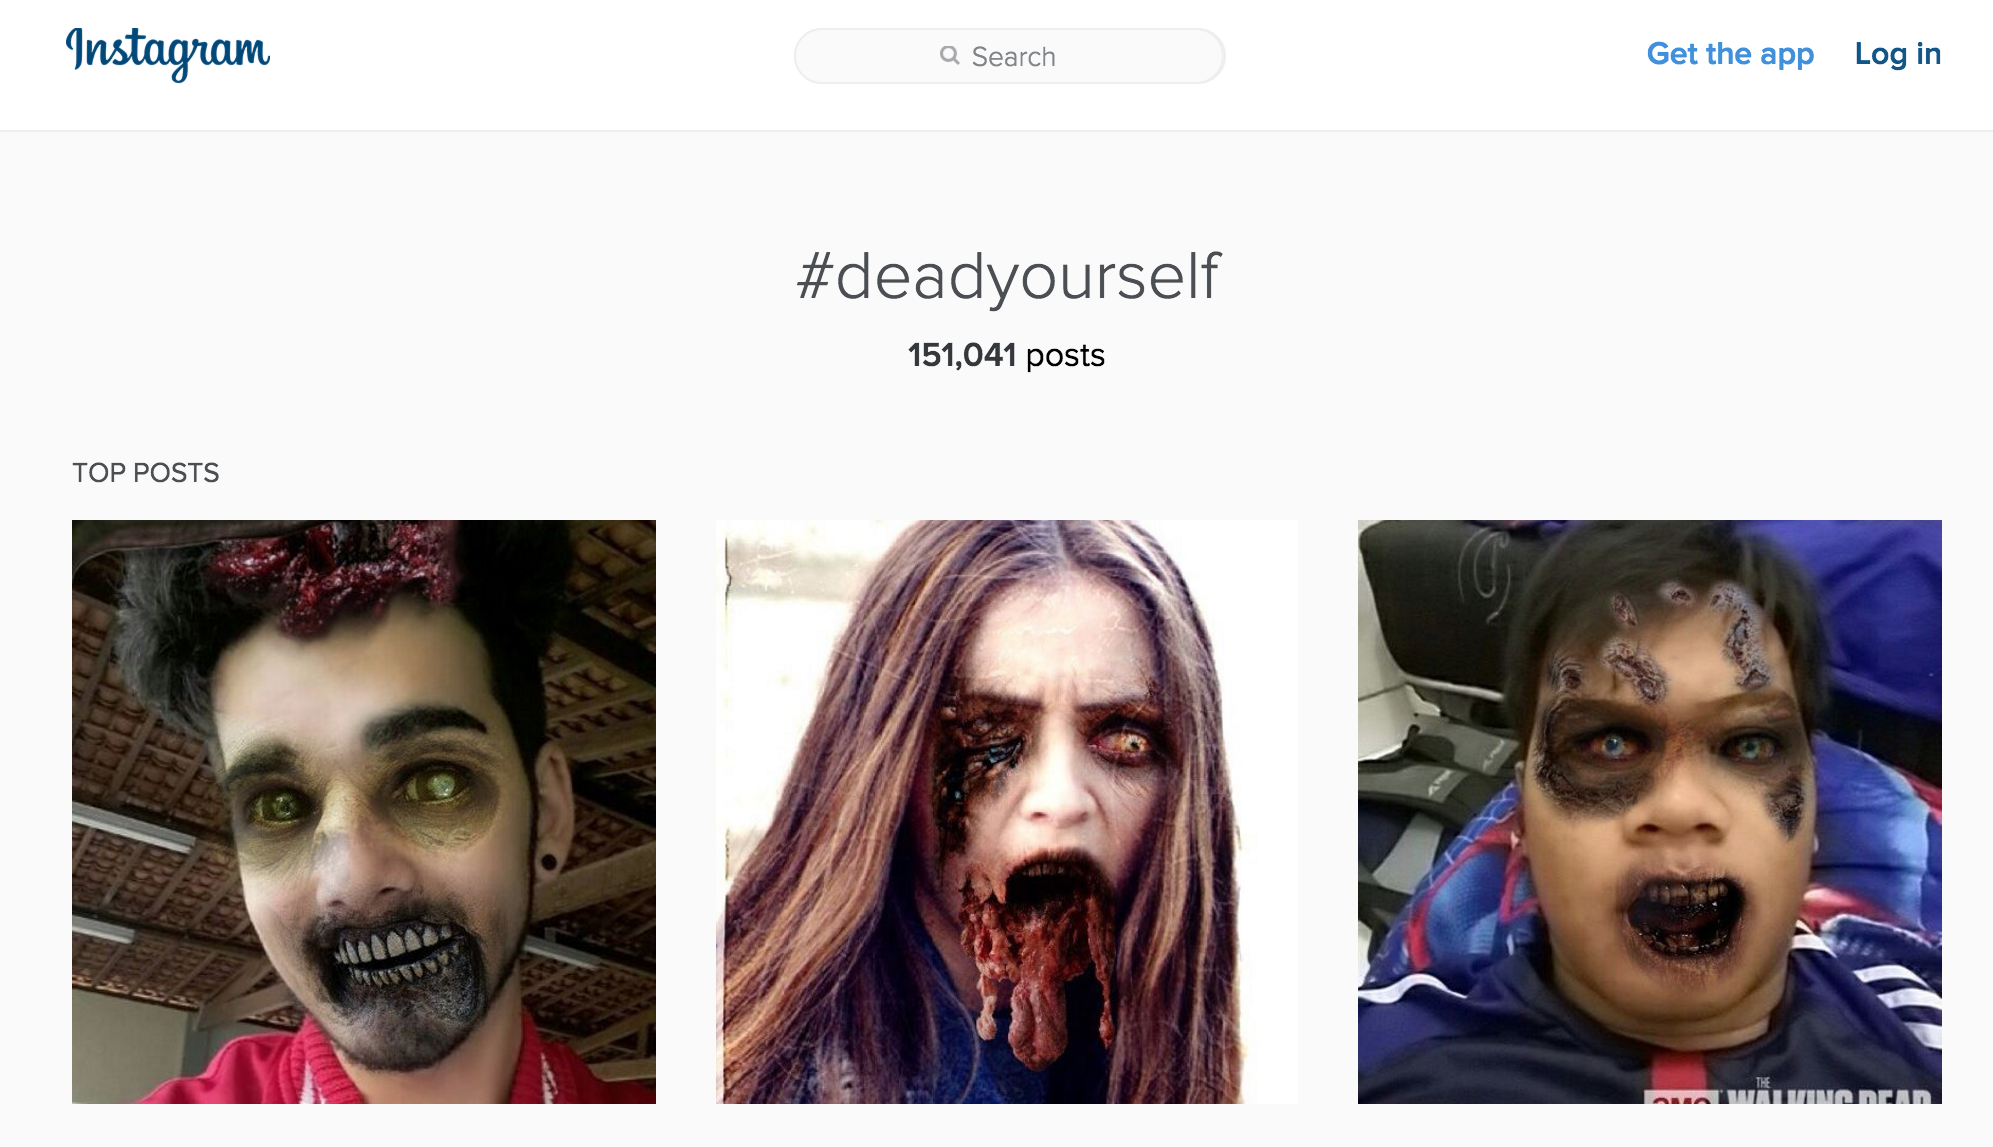 walking-deads-dead-yourself-hashtag